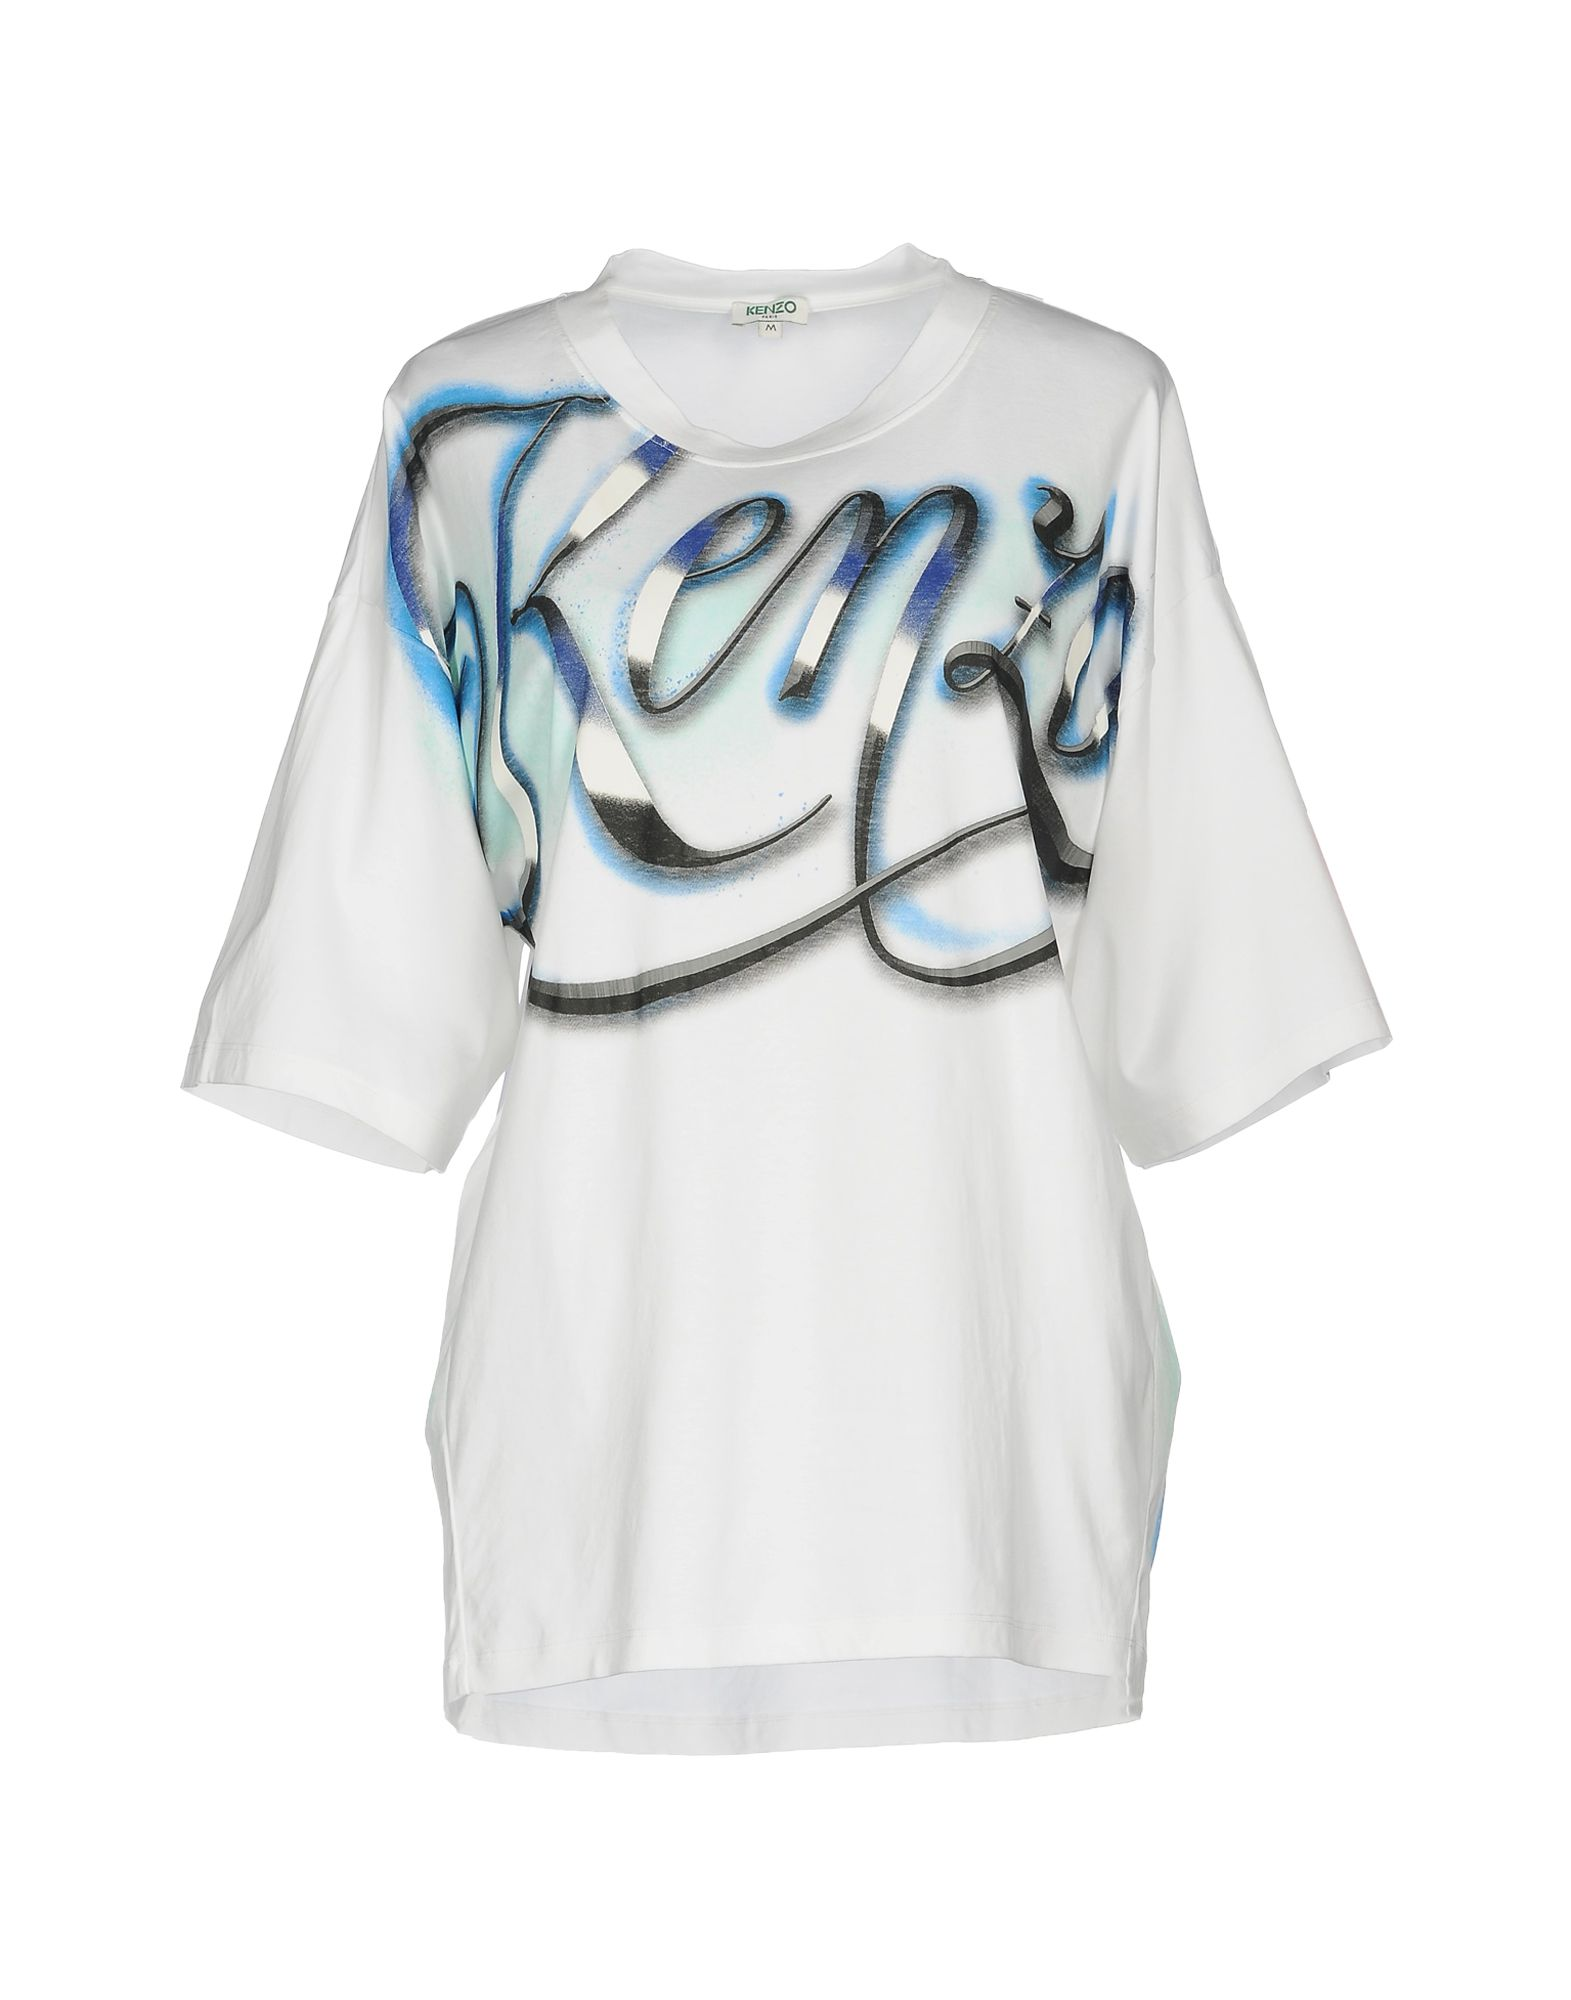 T-Shirt Kenzo Donna - Acquista online su nGVffO